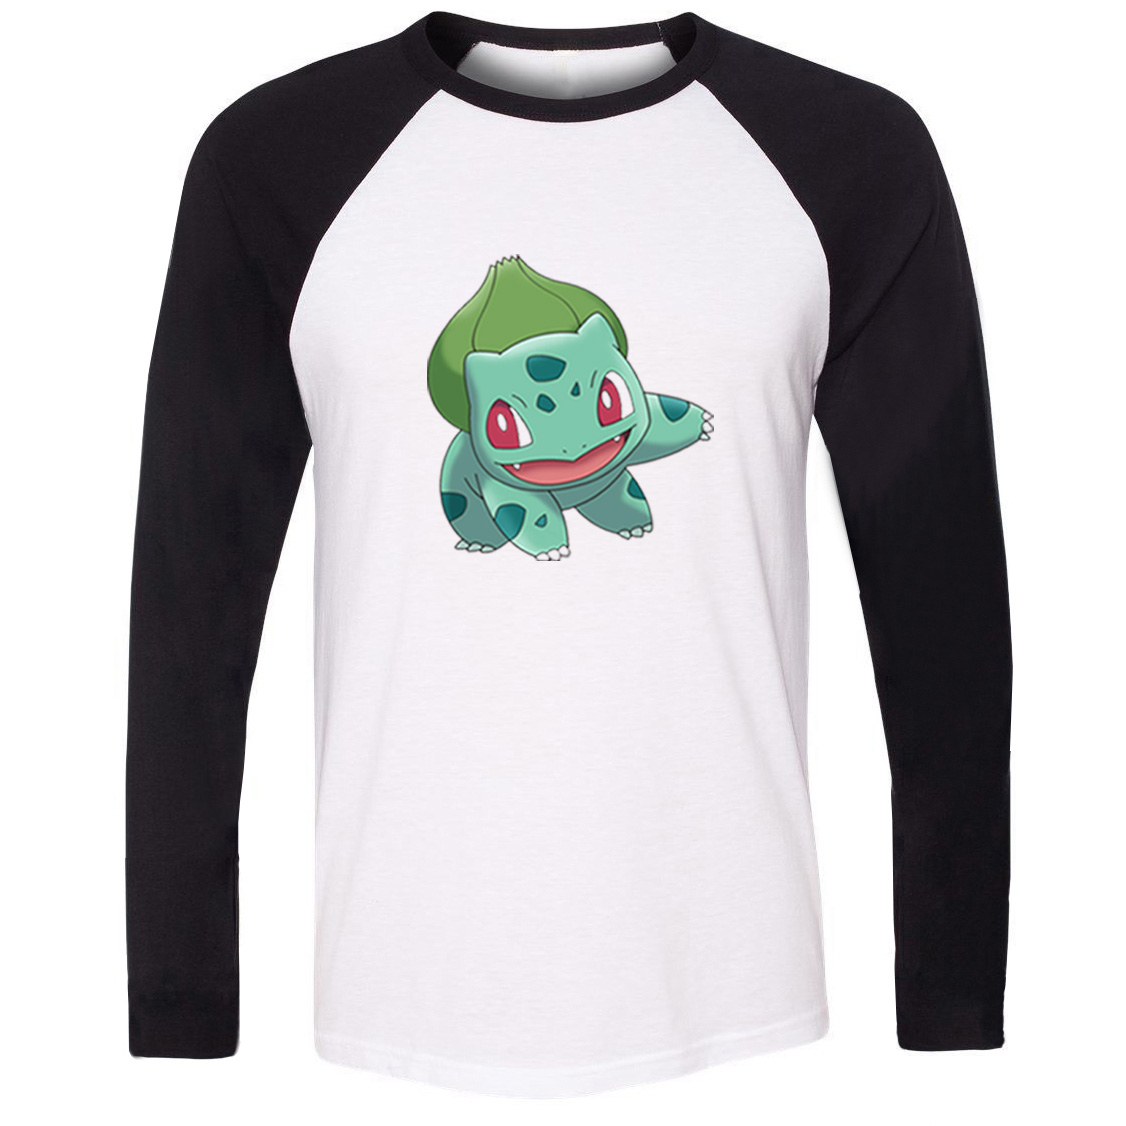 iDzn Unisex T-shirt Pokemon Grass Poison Type Bulbasaur Ivysaur Venusaur Art Pattern Long Sleeve Men T shirt Boy Casual Tee Tops image